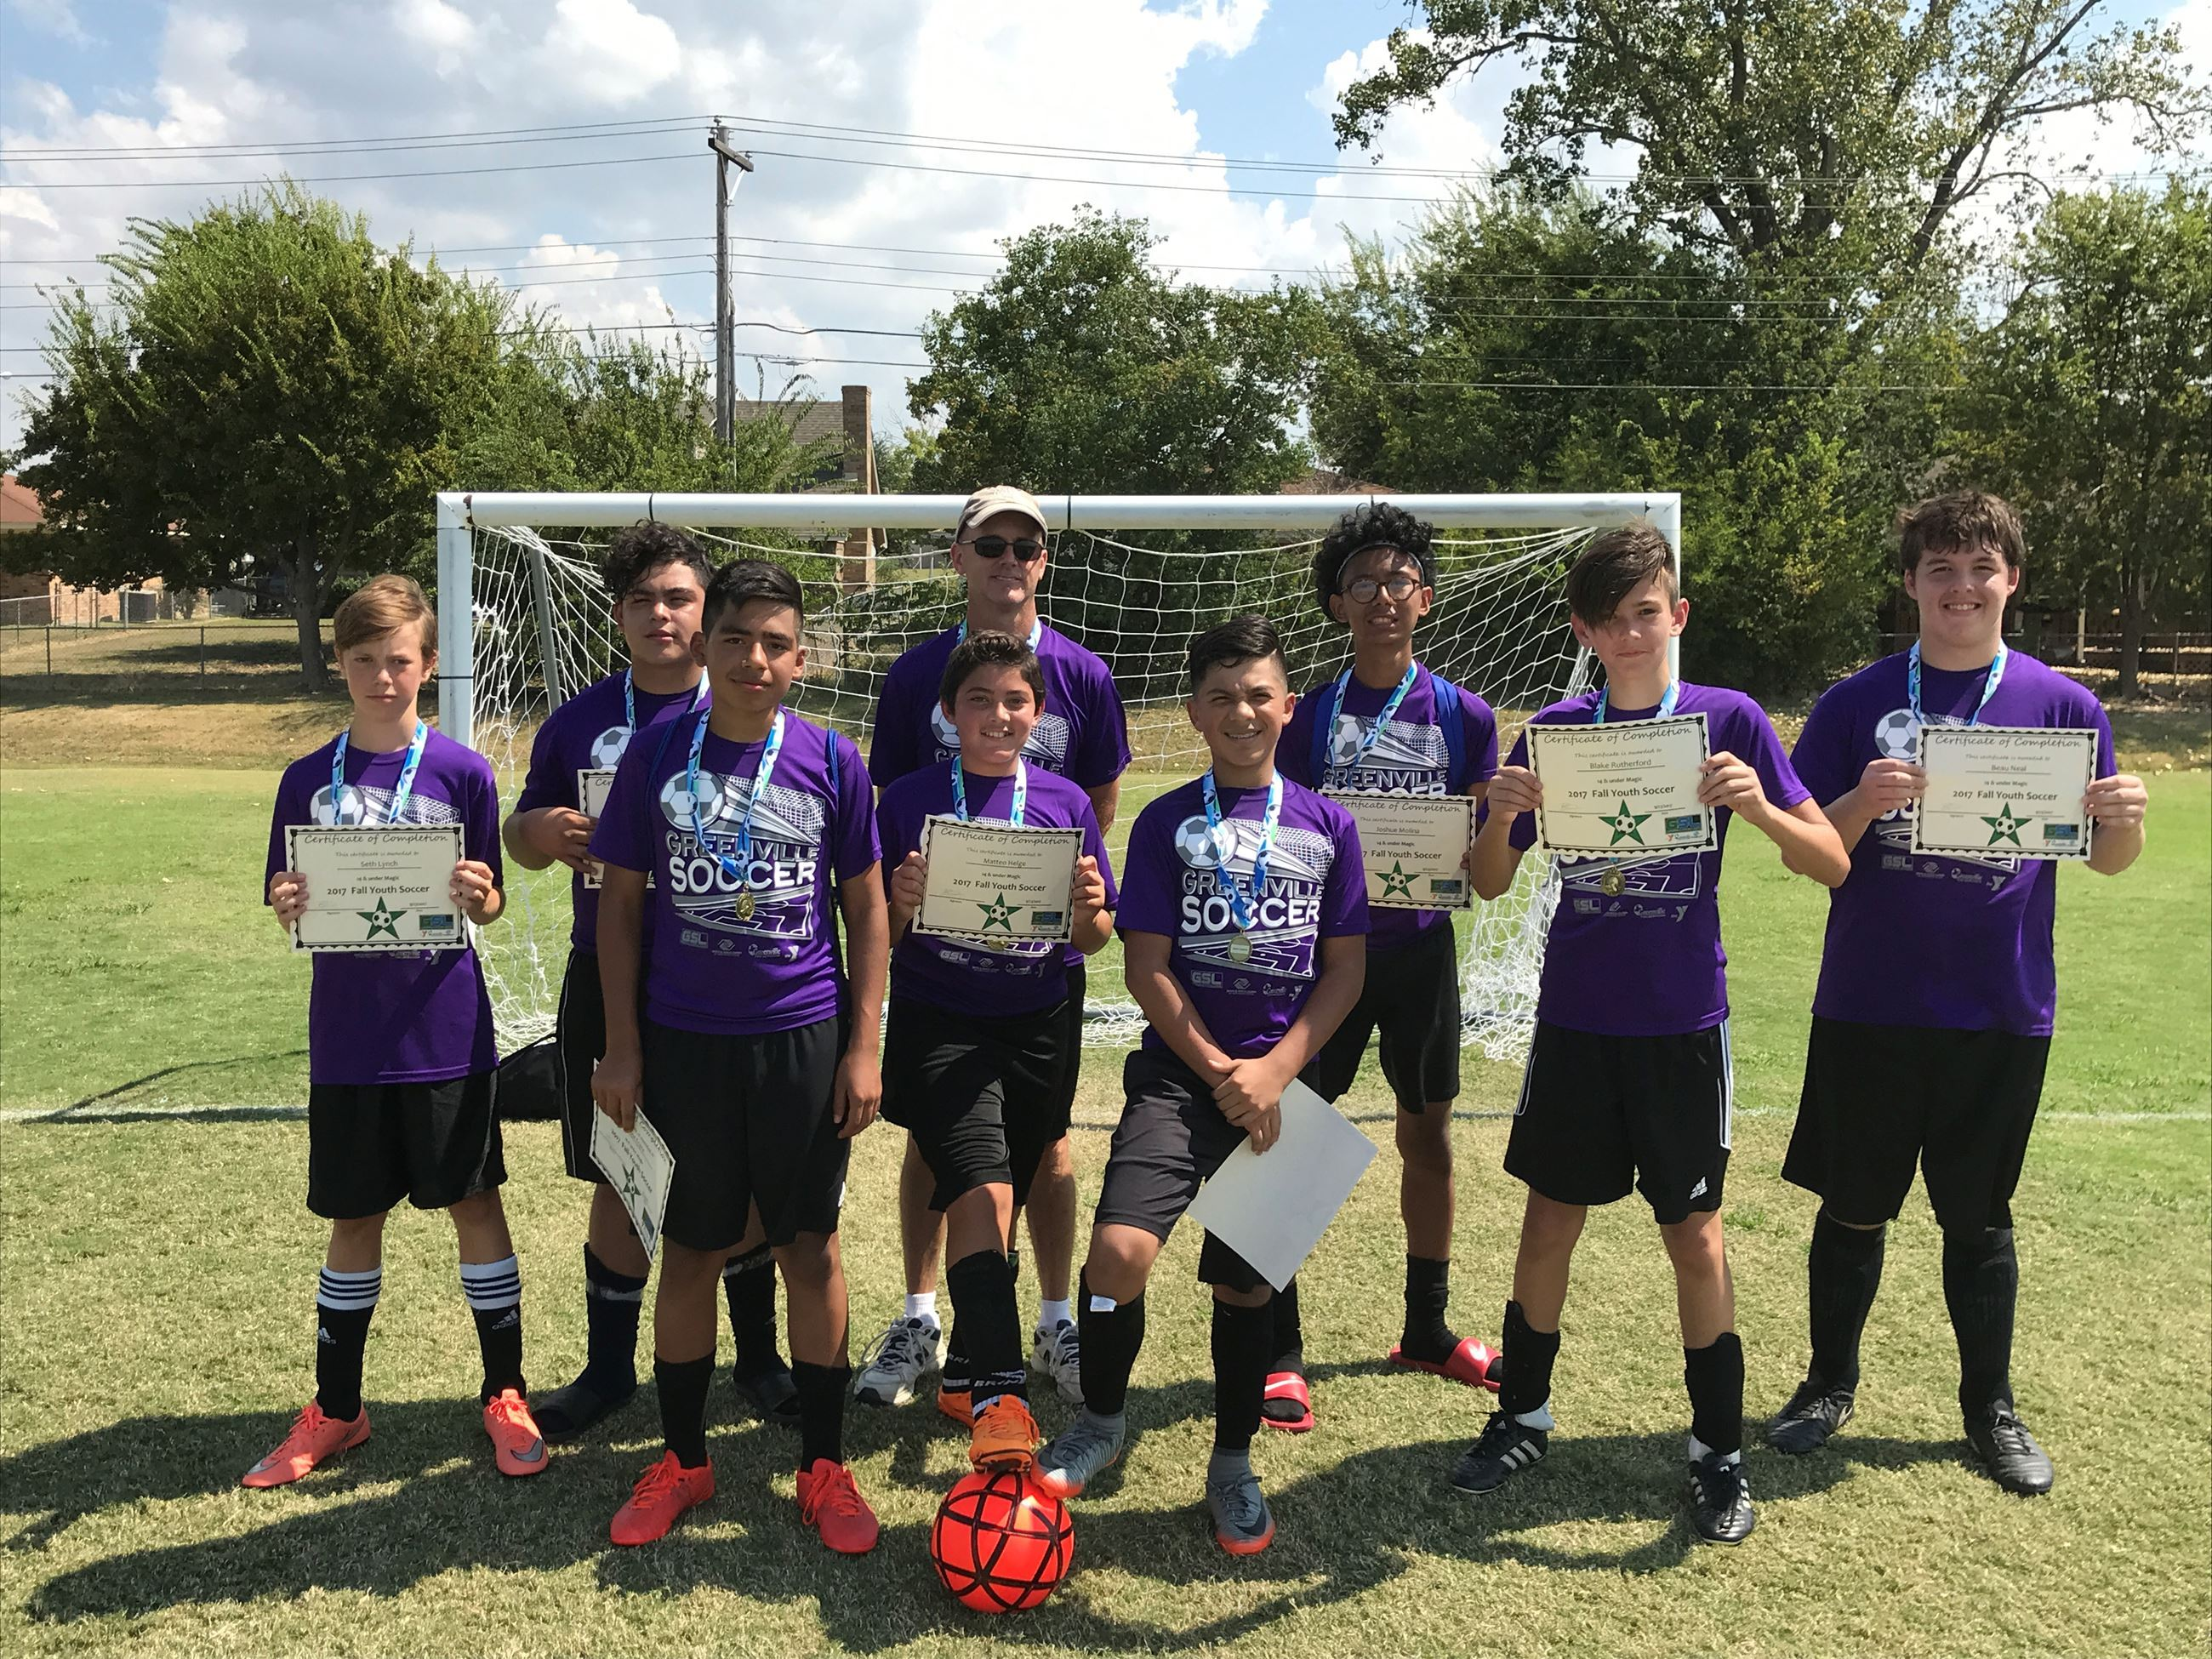 Boys soccer team in purple with certificates